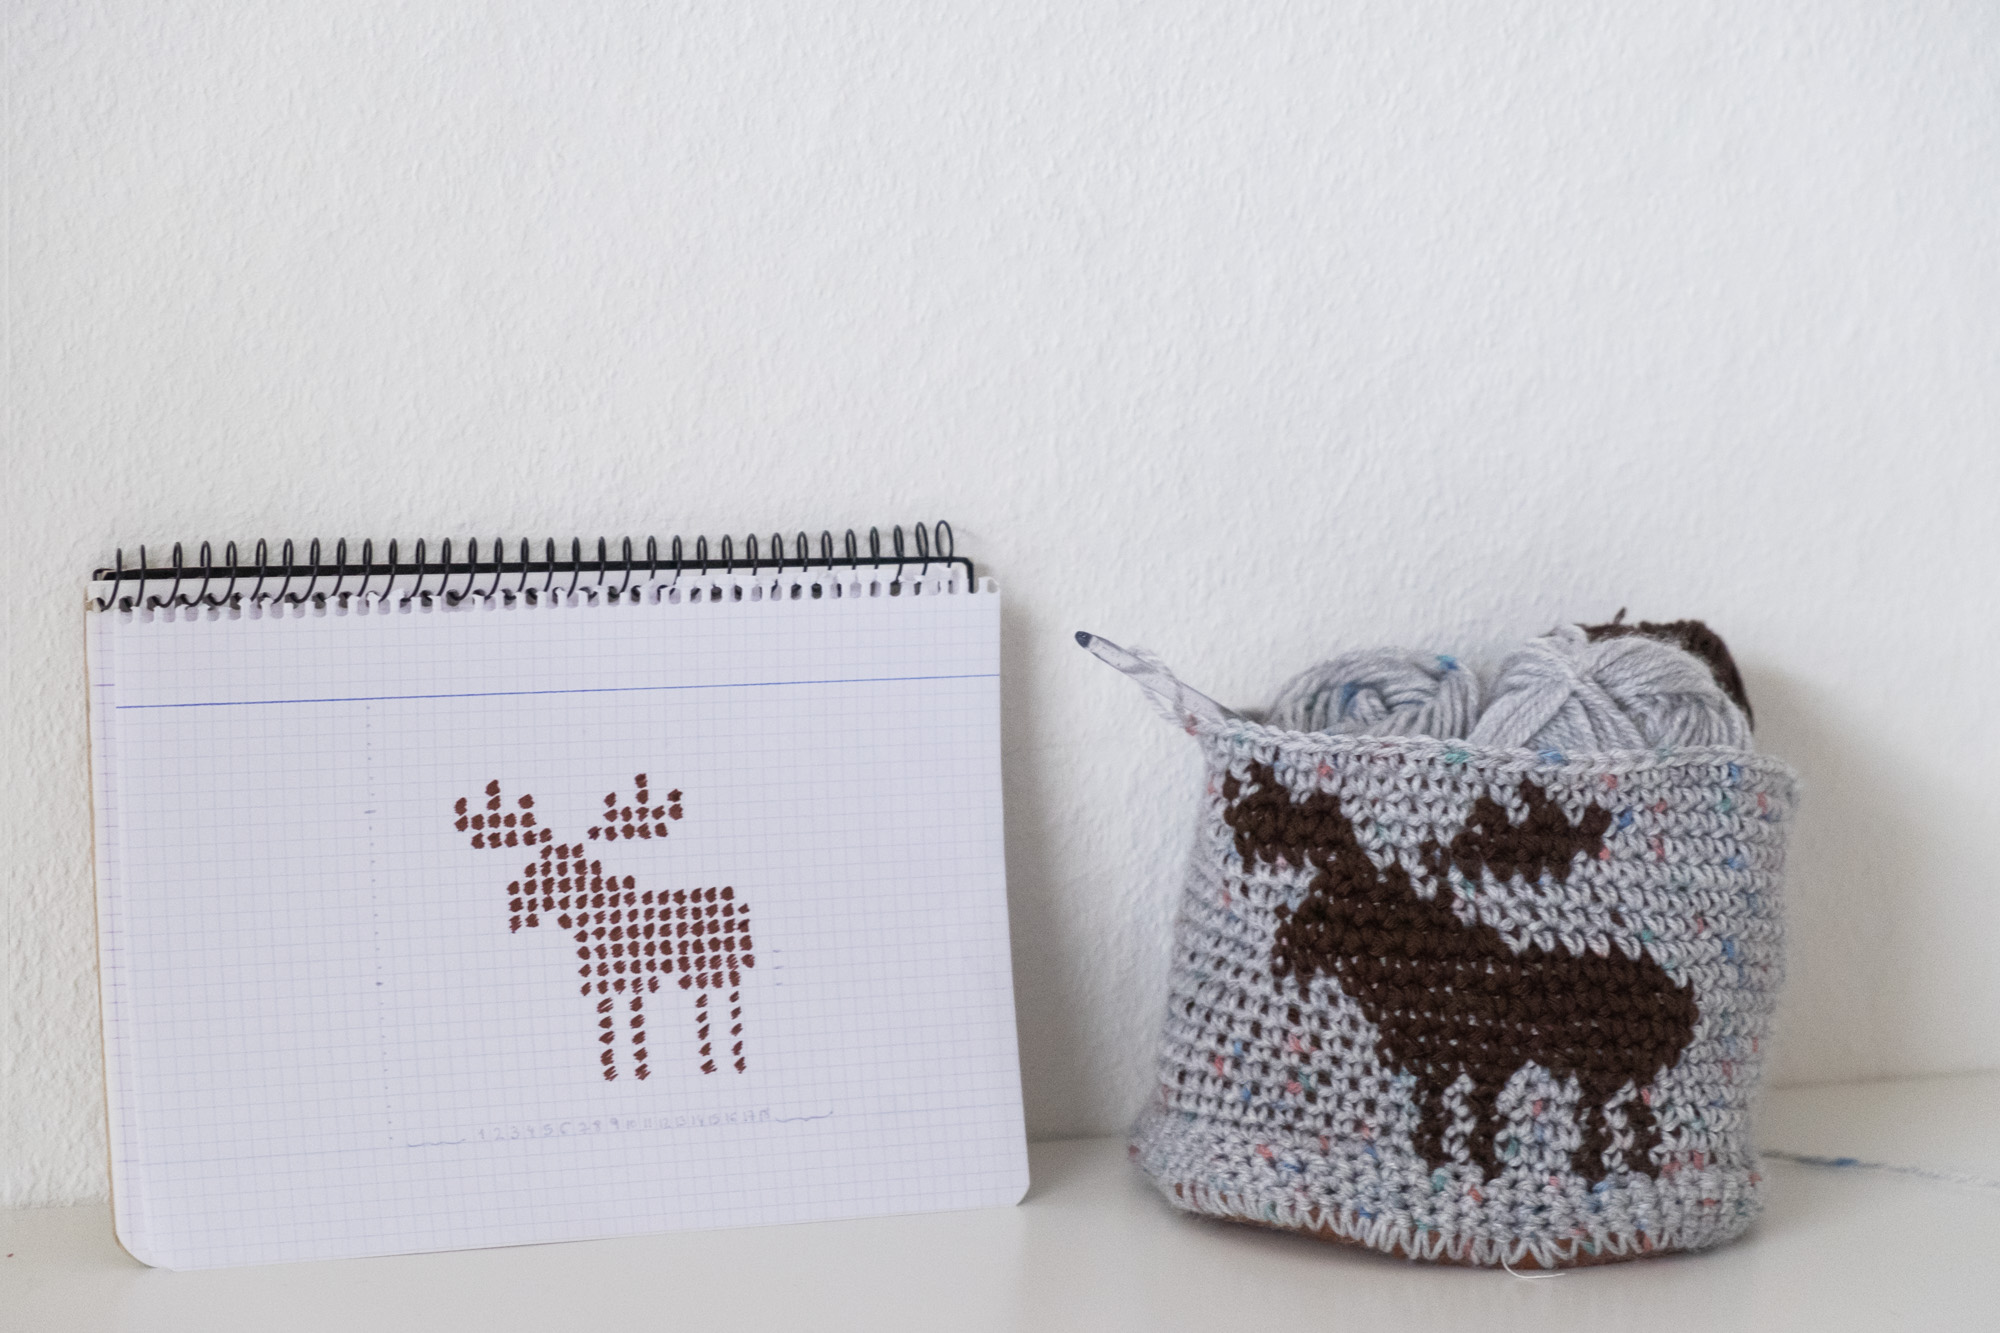 Moose make with Tapestry Crochet.